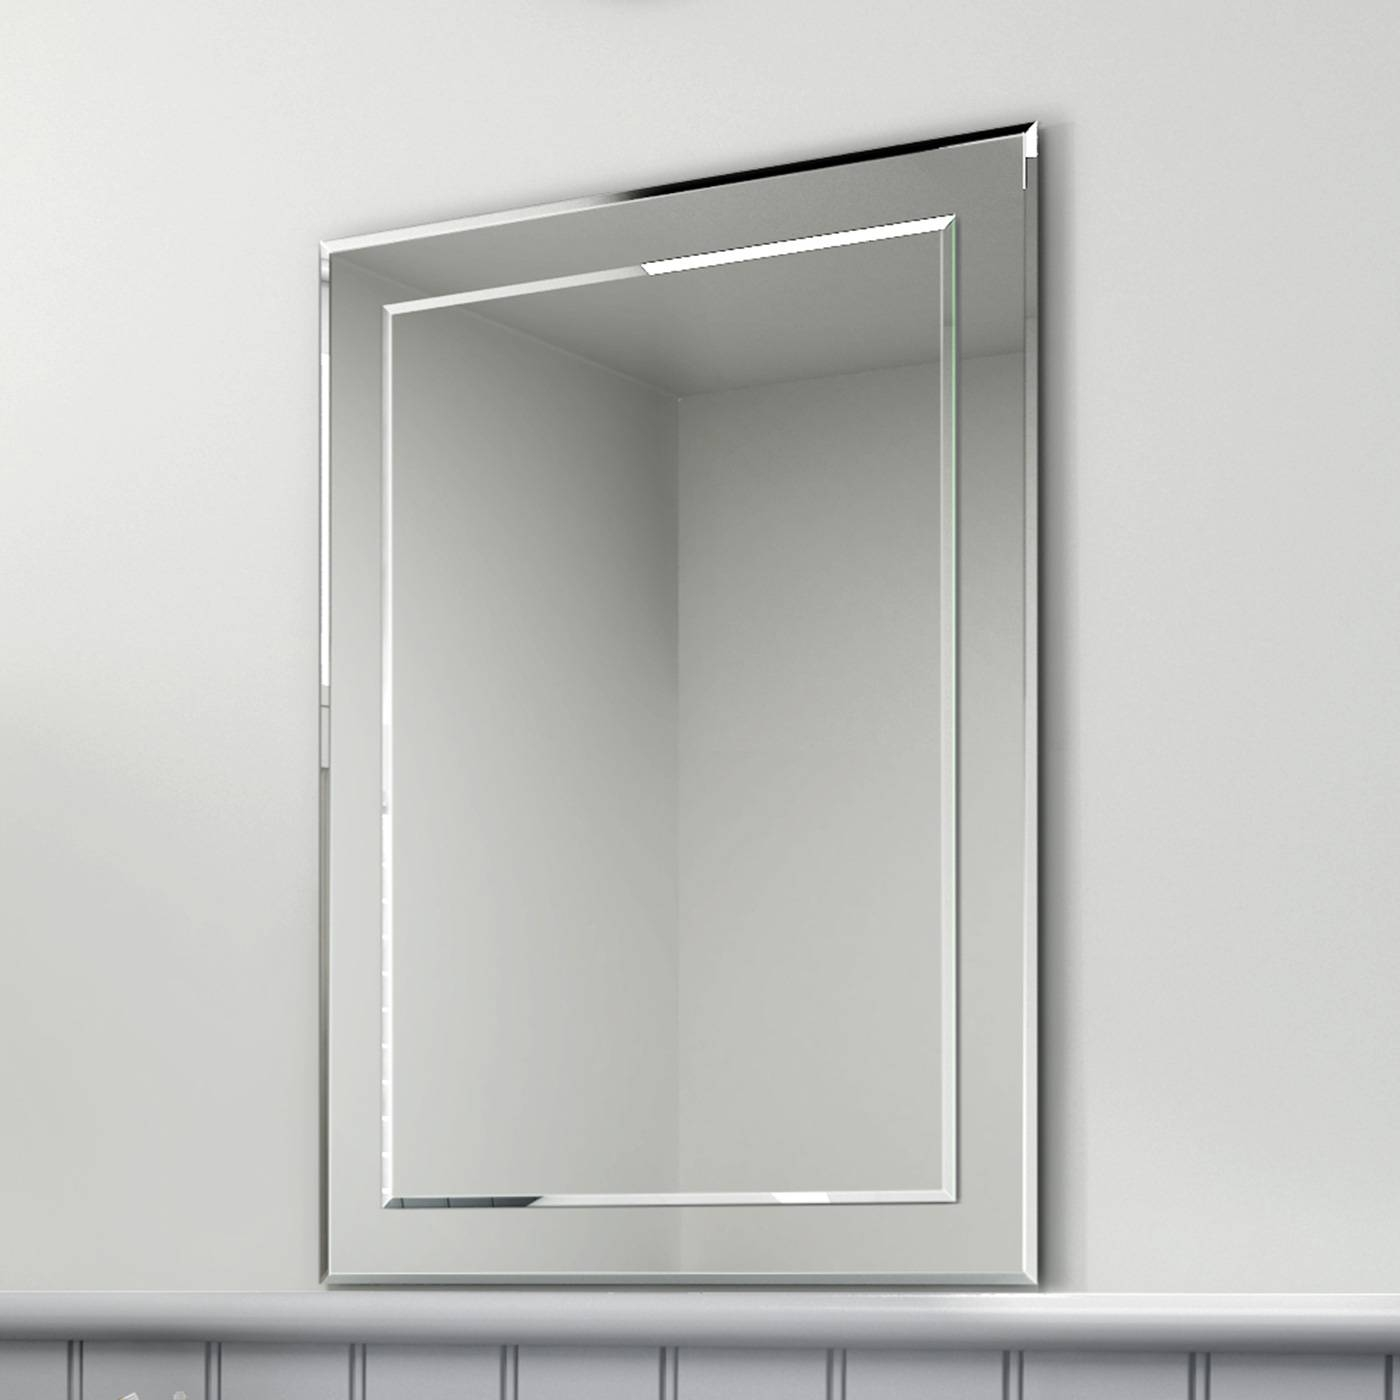 500 X 700 Modern Bevelled Edge Silver Bathroom Wall Mirror | Ebay intended for Bevel Mirrors (Image 2 of 15)